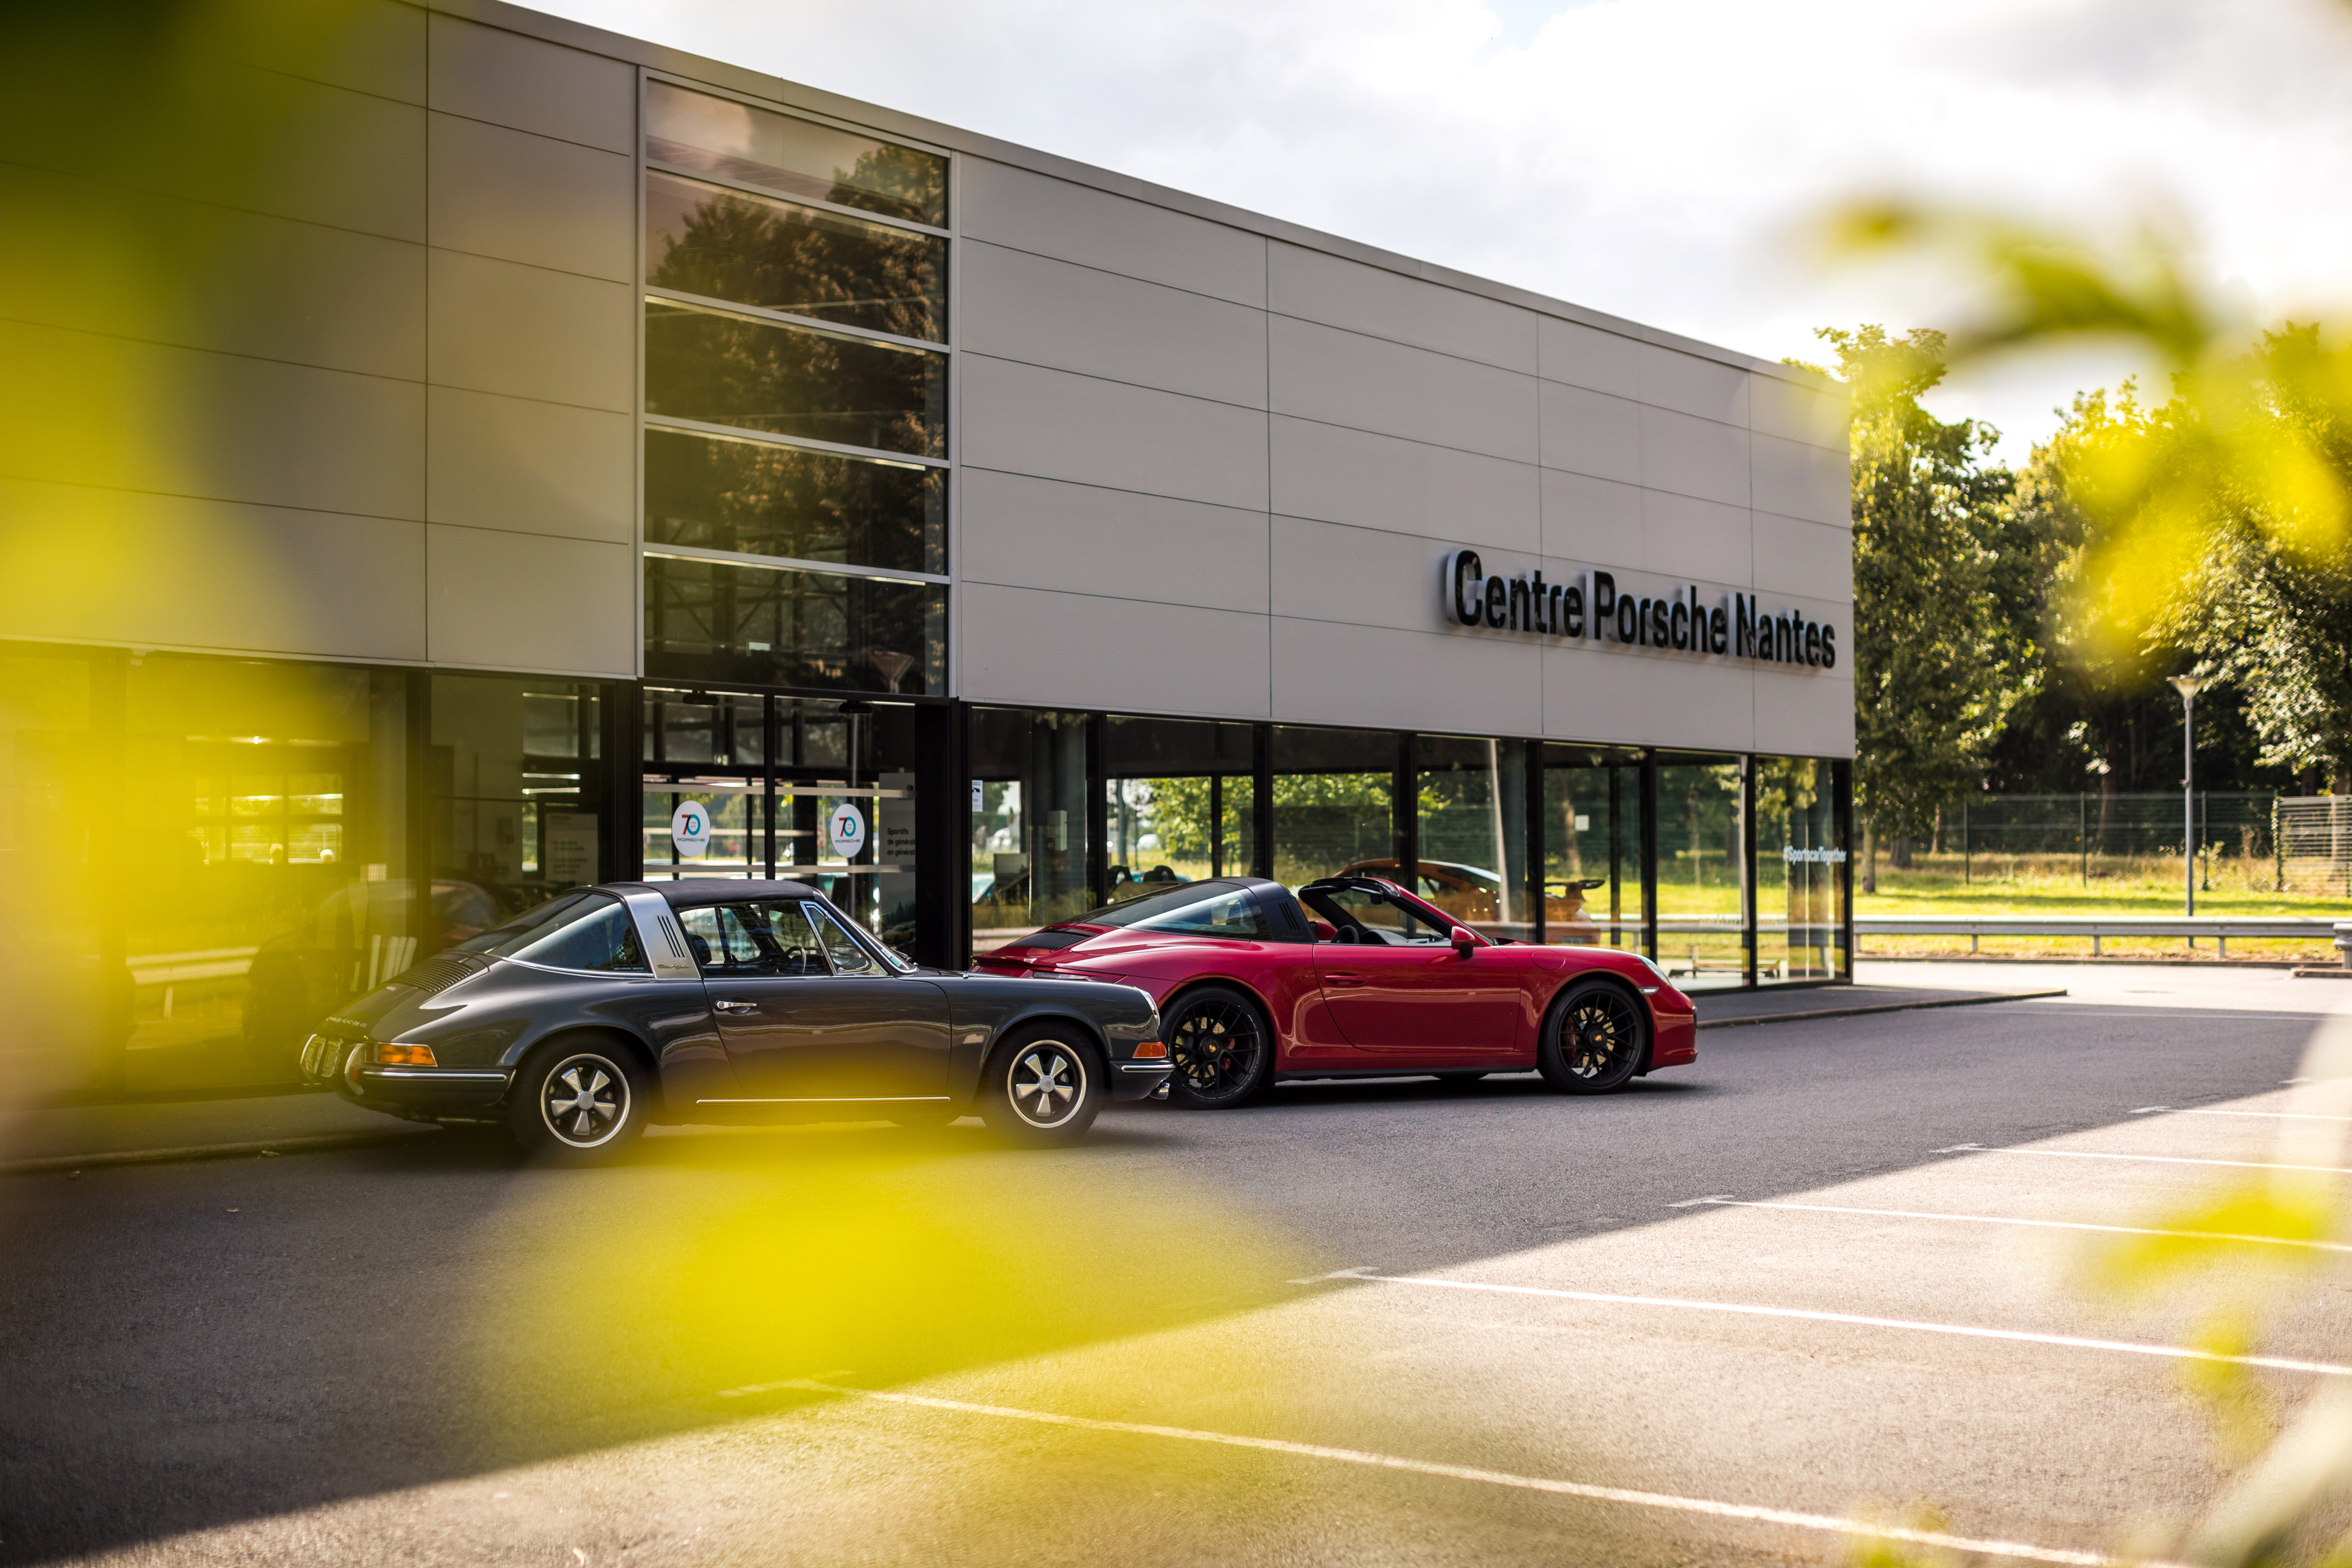 centre porsche nantes concessionnaire porsche st herblain auto occasion st herblain. Black Bedroom Furniture Sets. Home Design Ideas